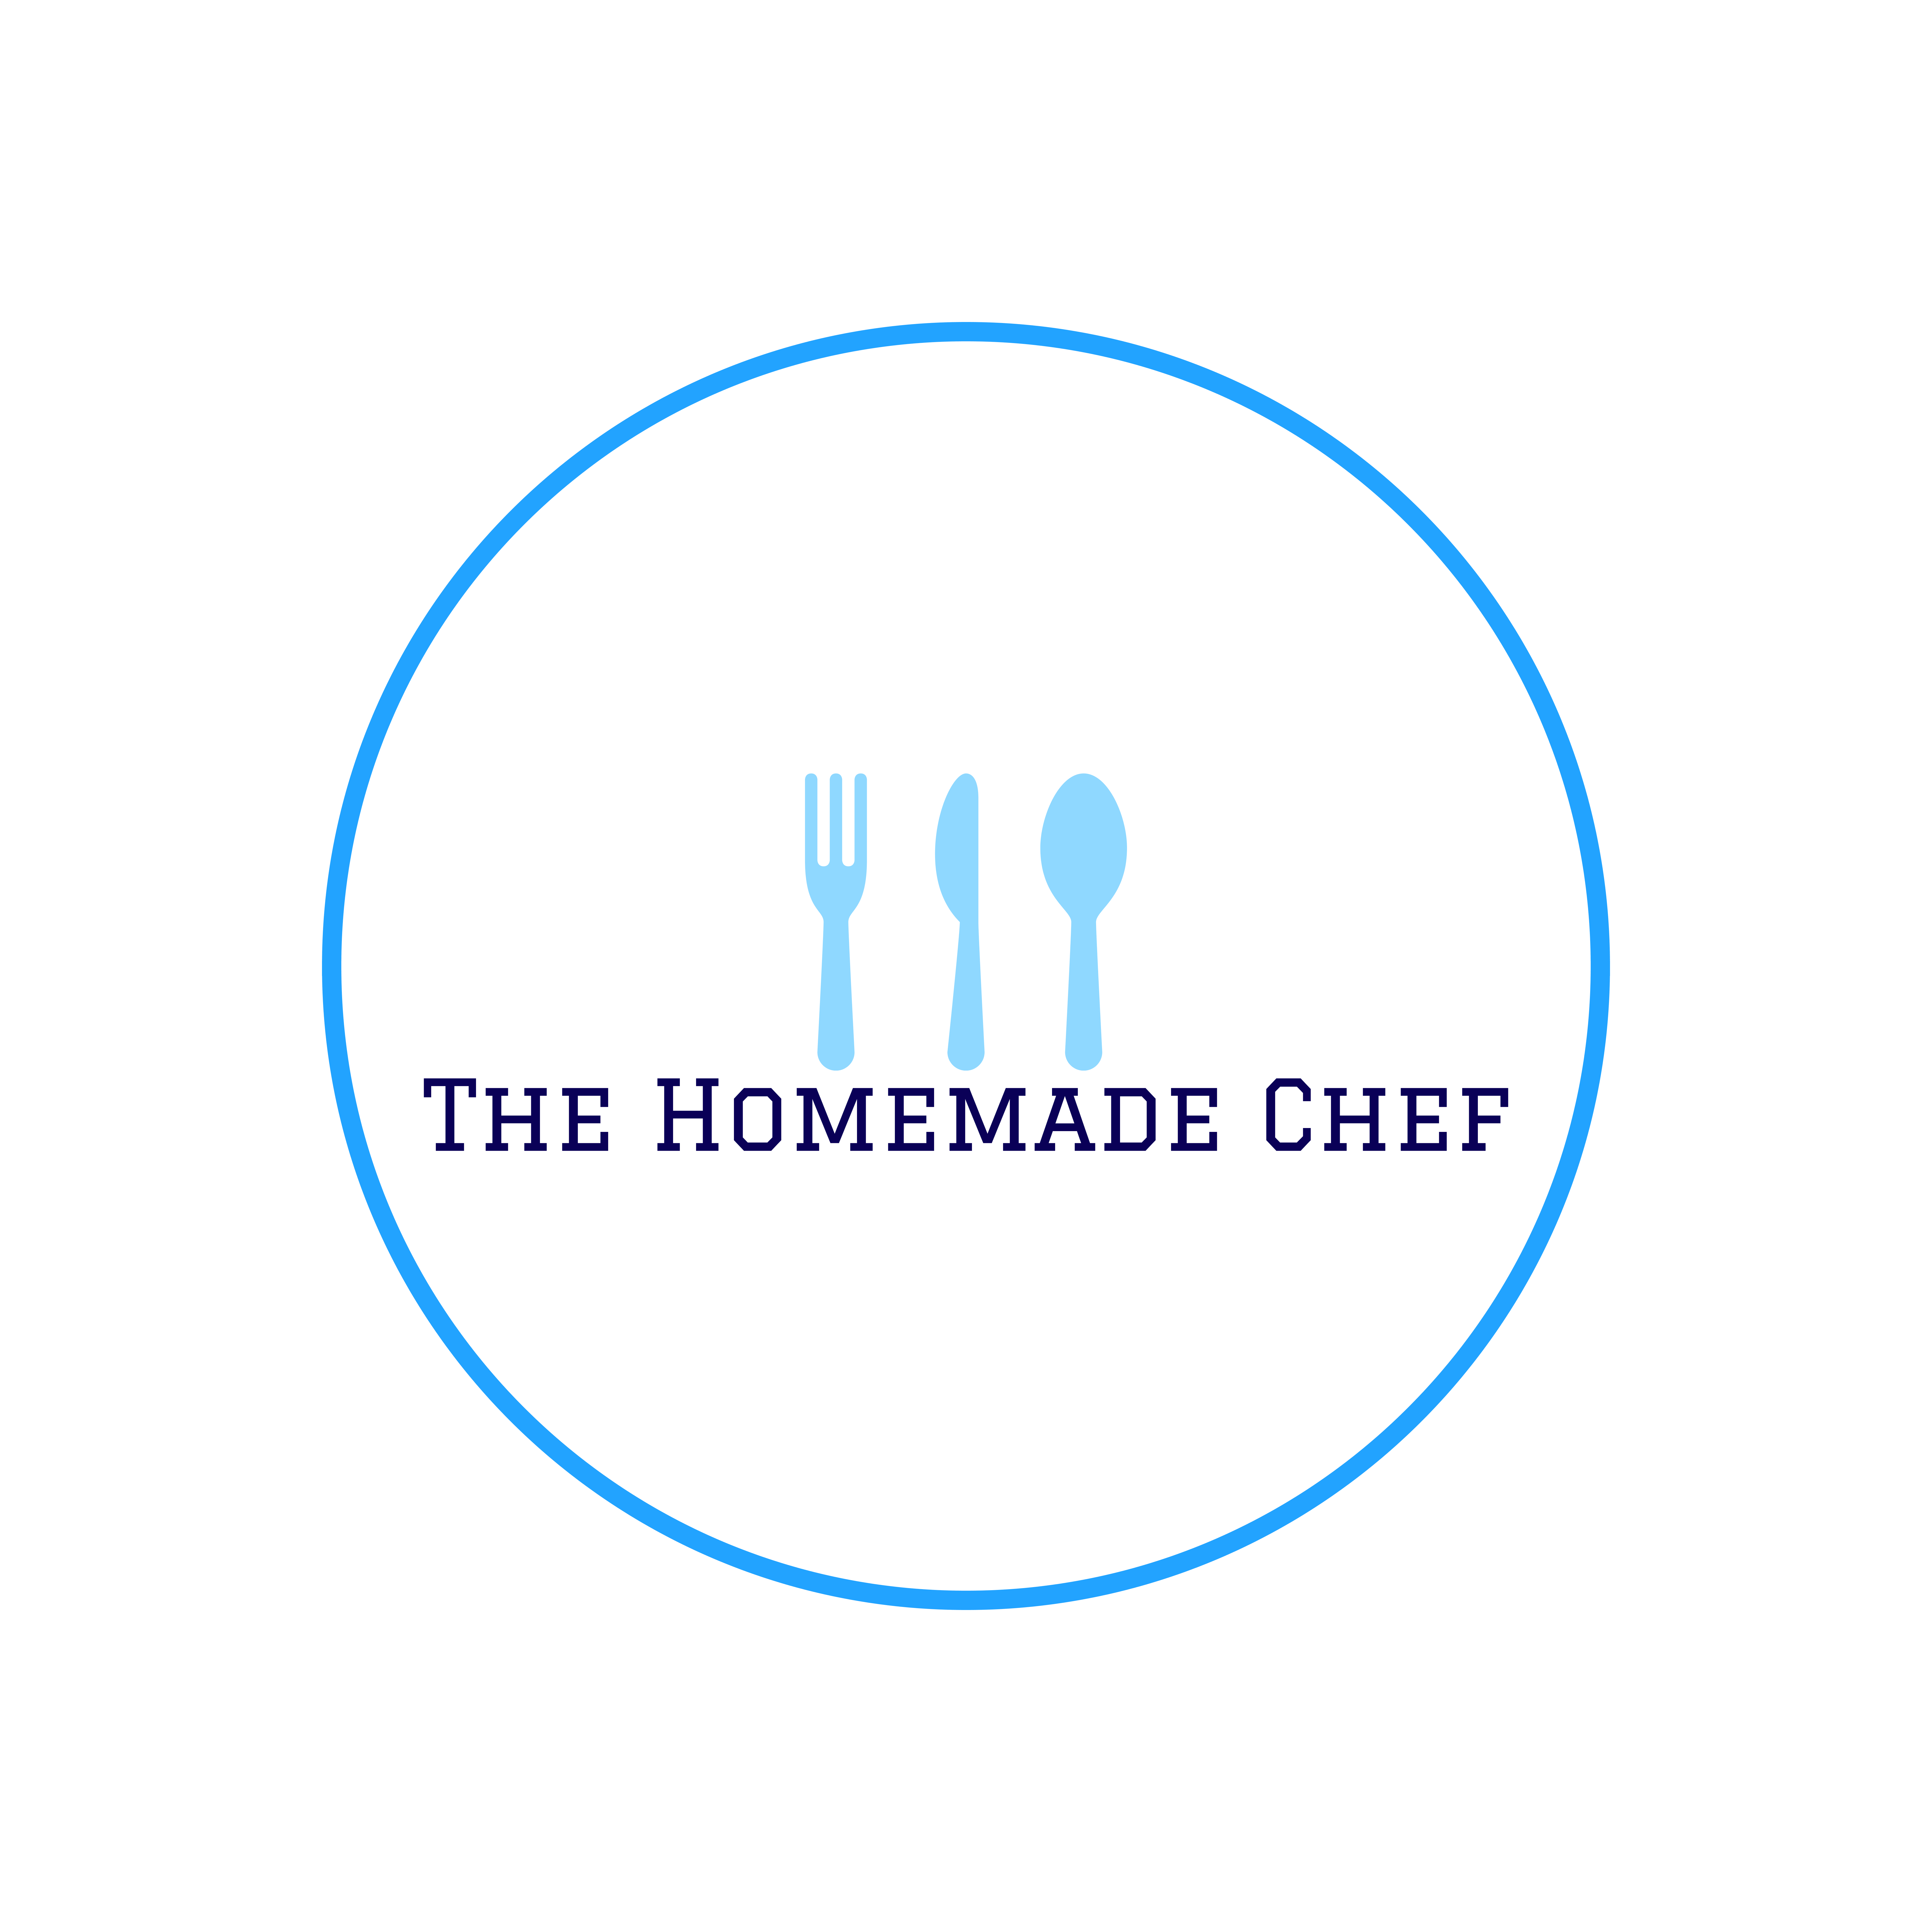 The Homemade Chef